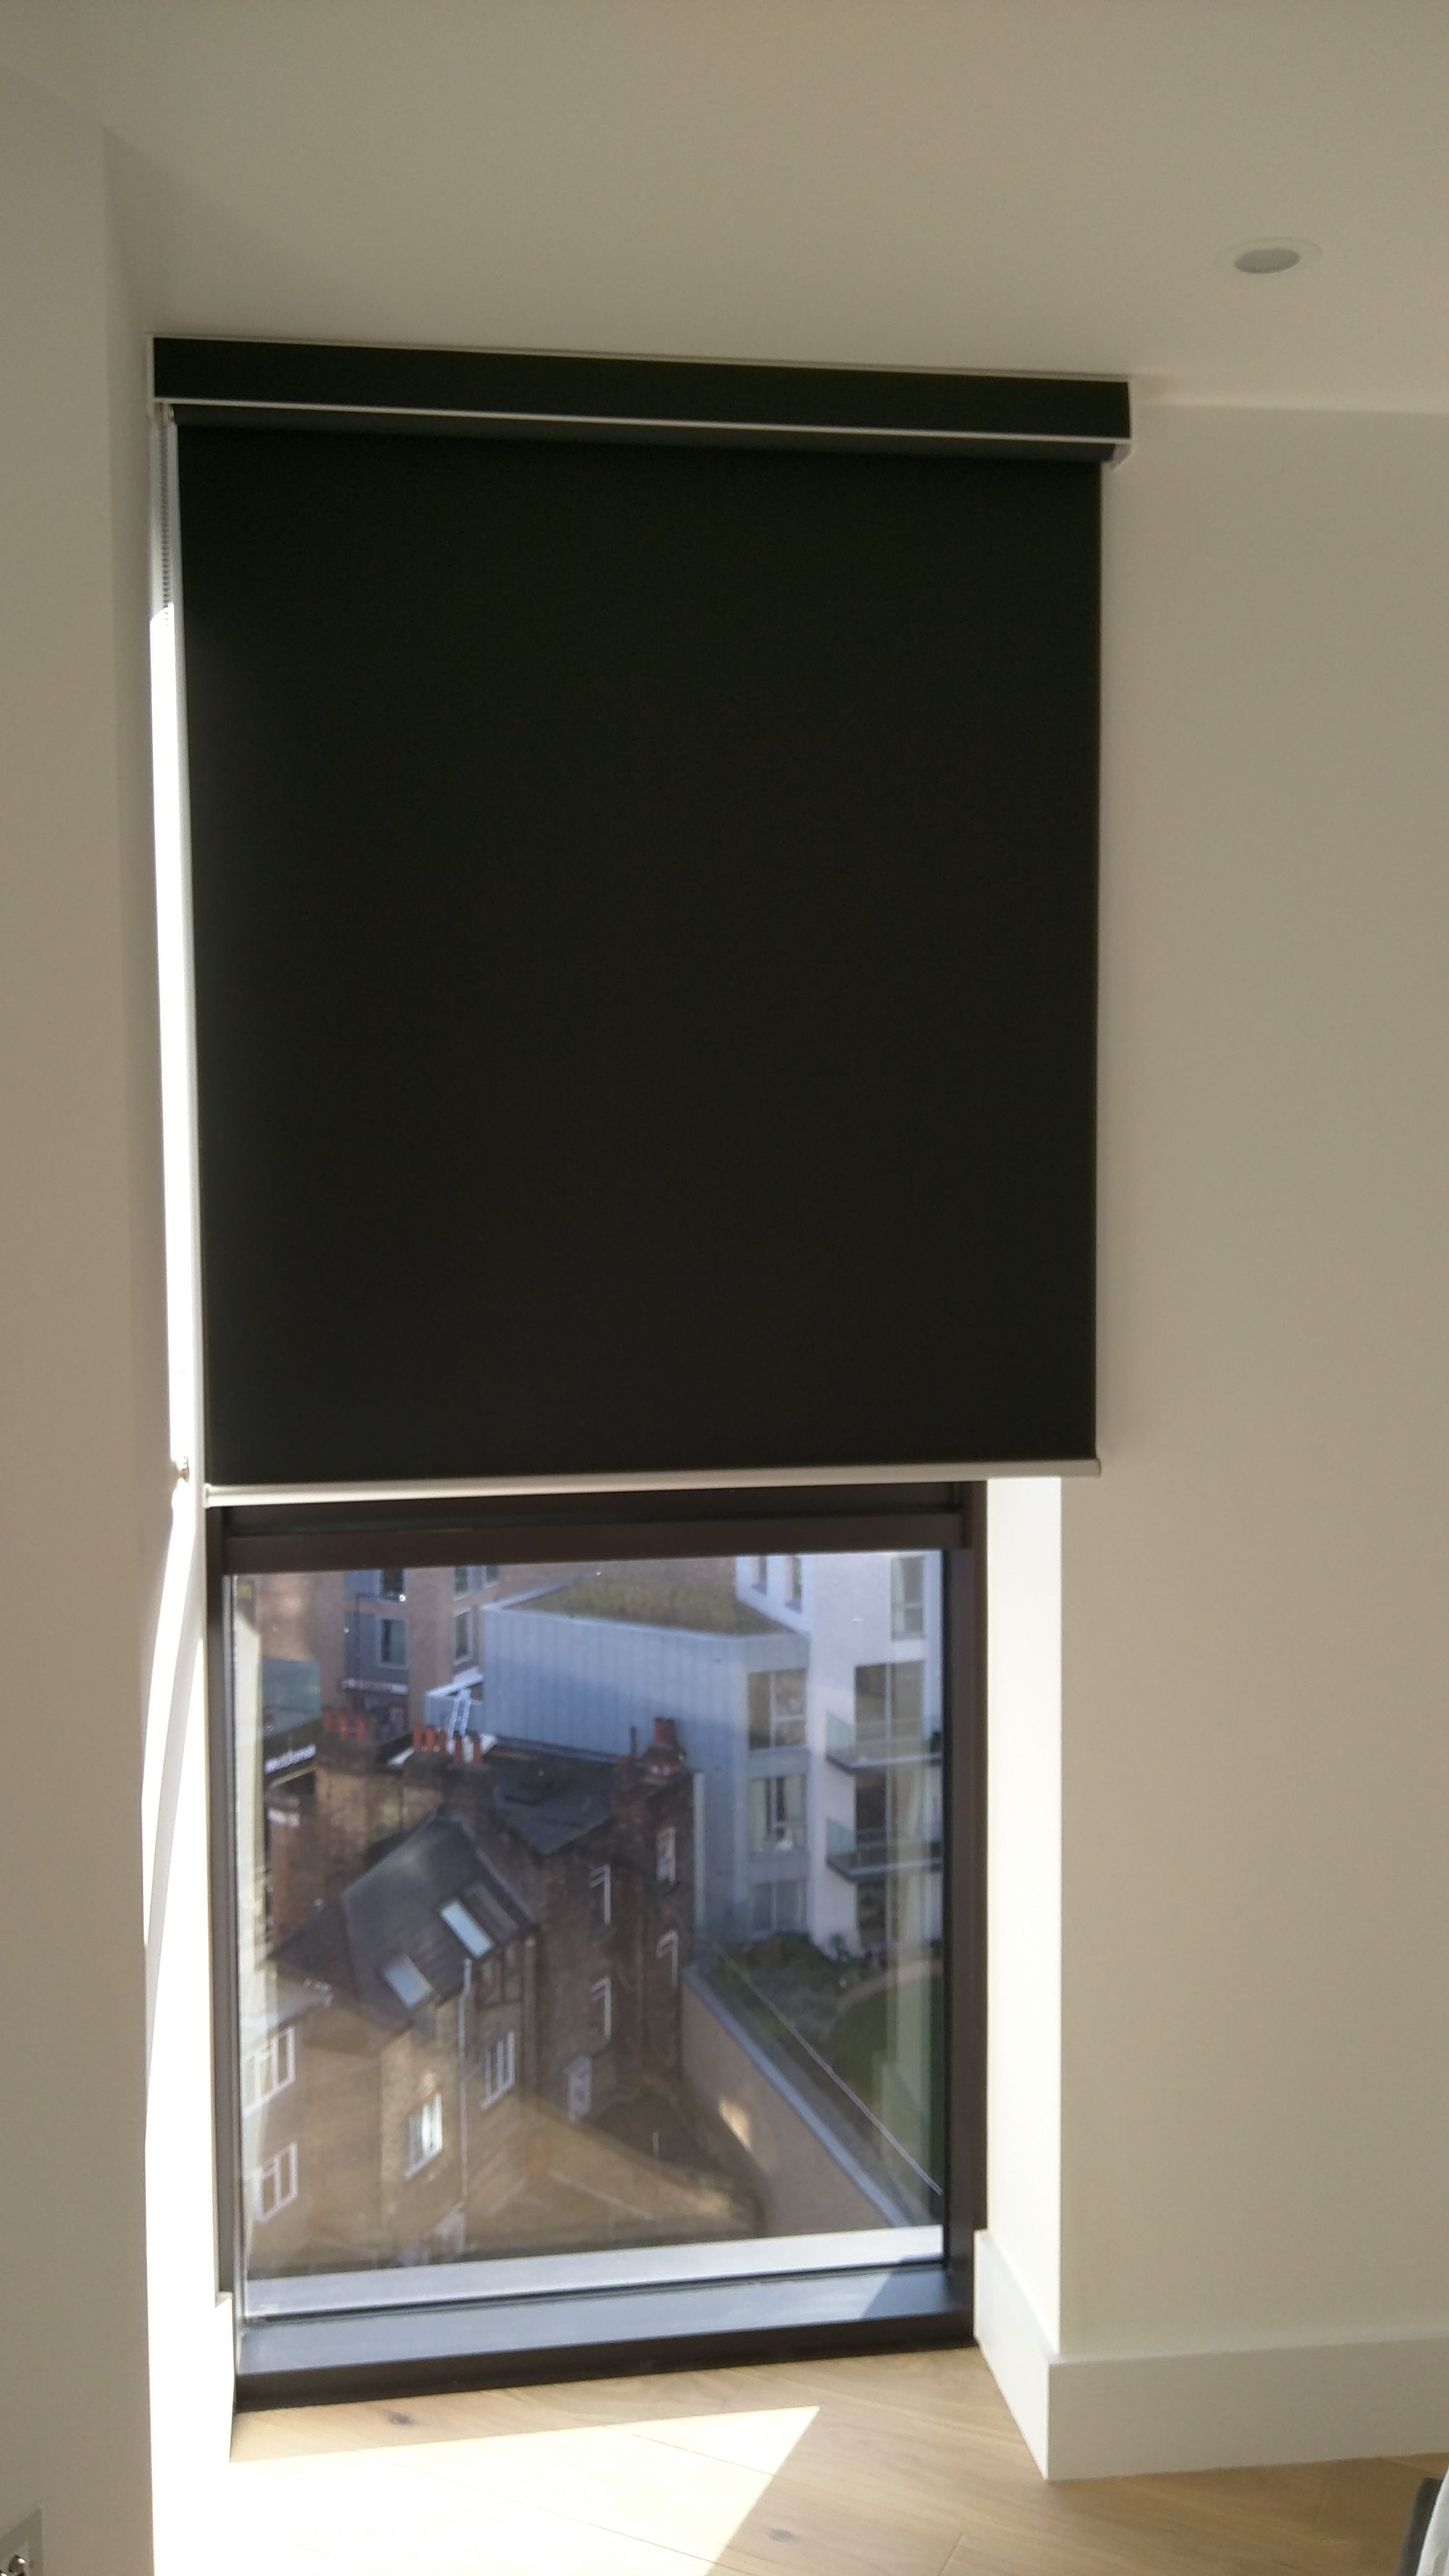 Blackout Roller Blind With Matching Pelmet Fitted Outside The Recess Window Bedroom Blind Da Living Room Blinds Wooden Window Blinds Vertical Window Blinds